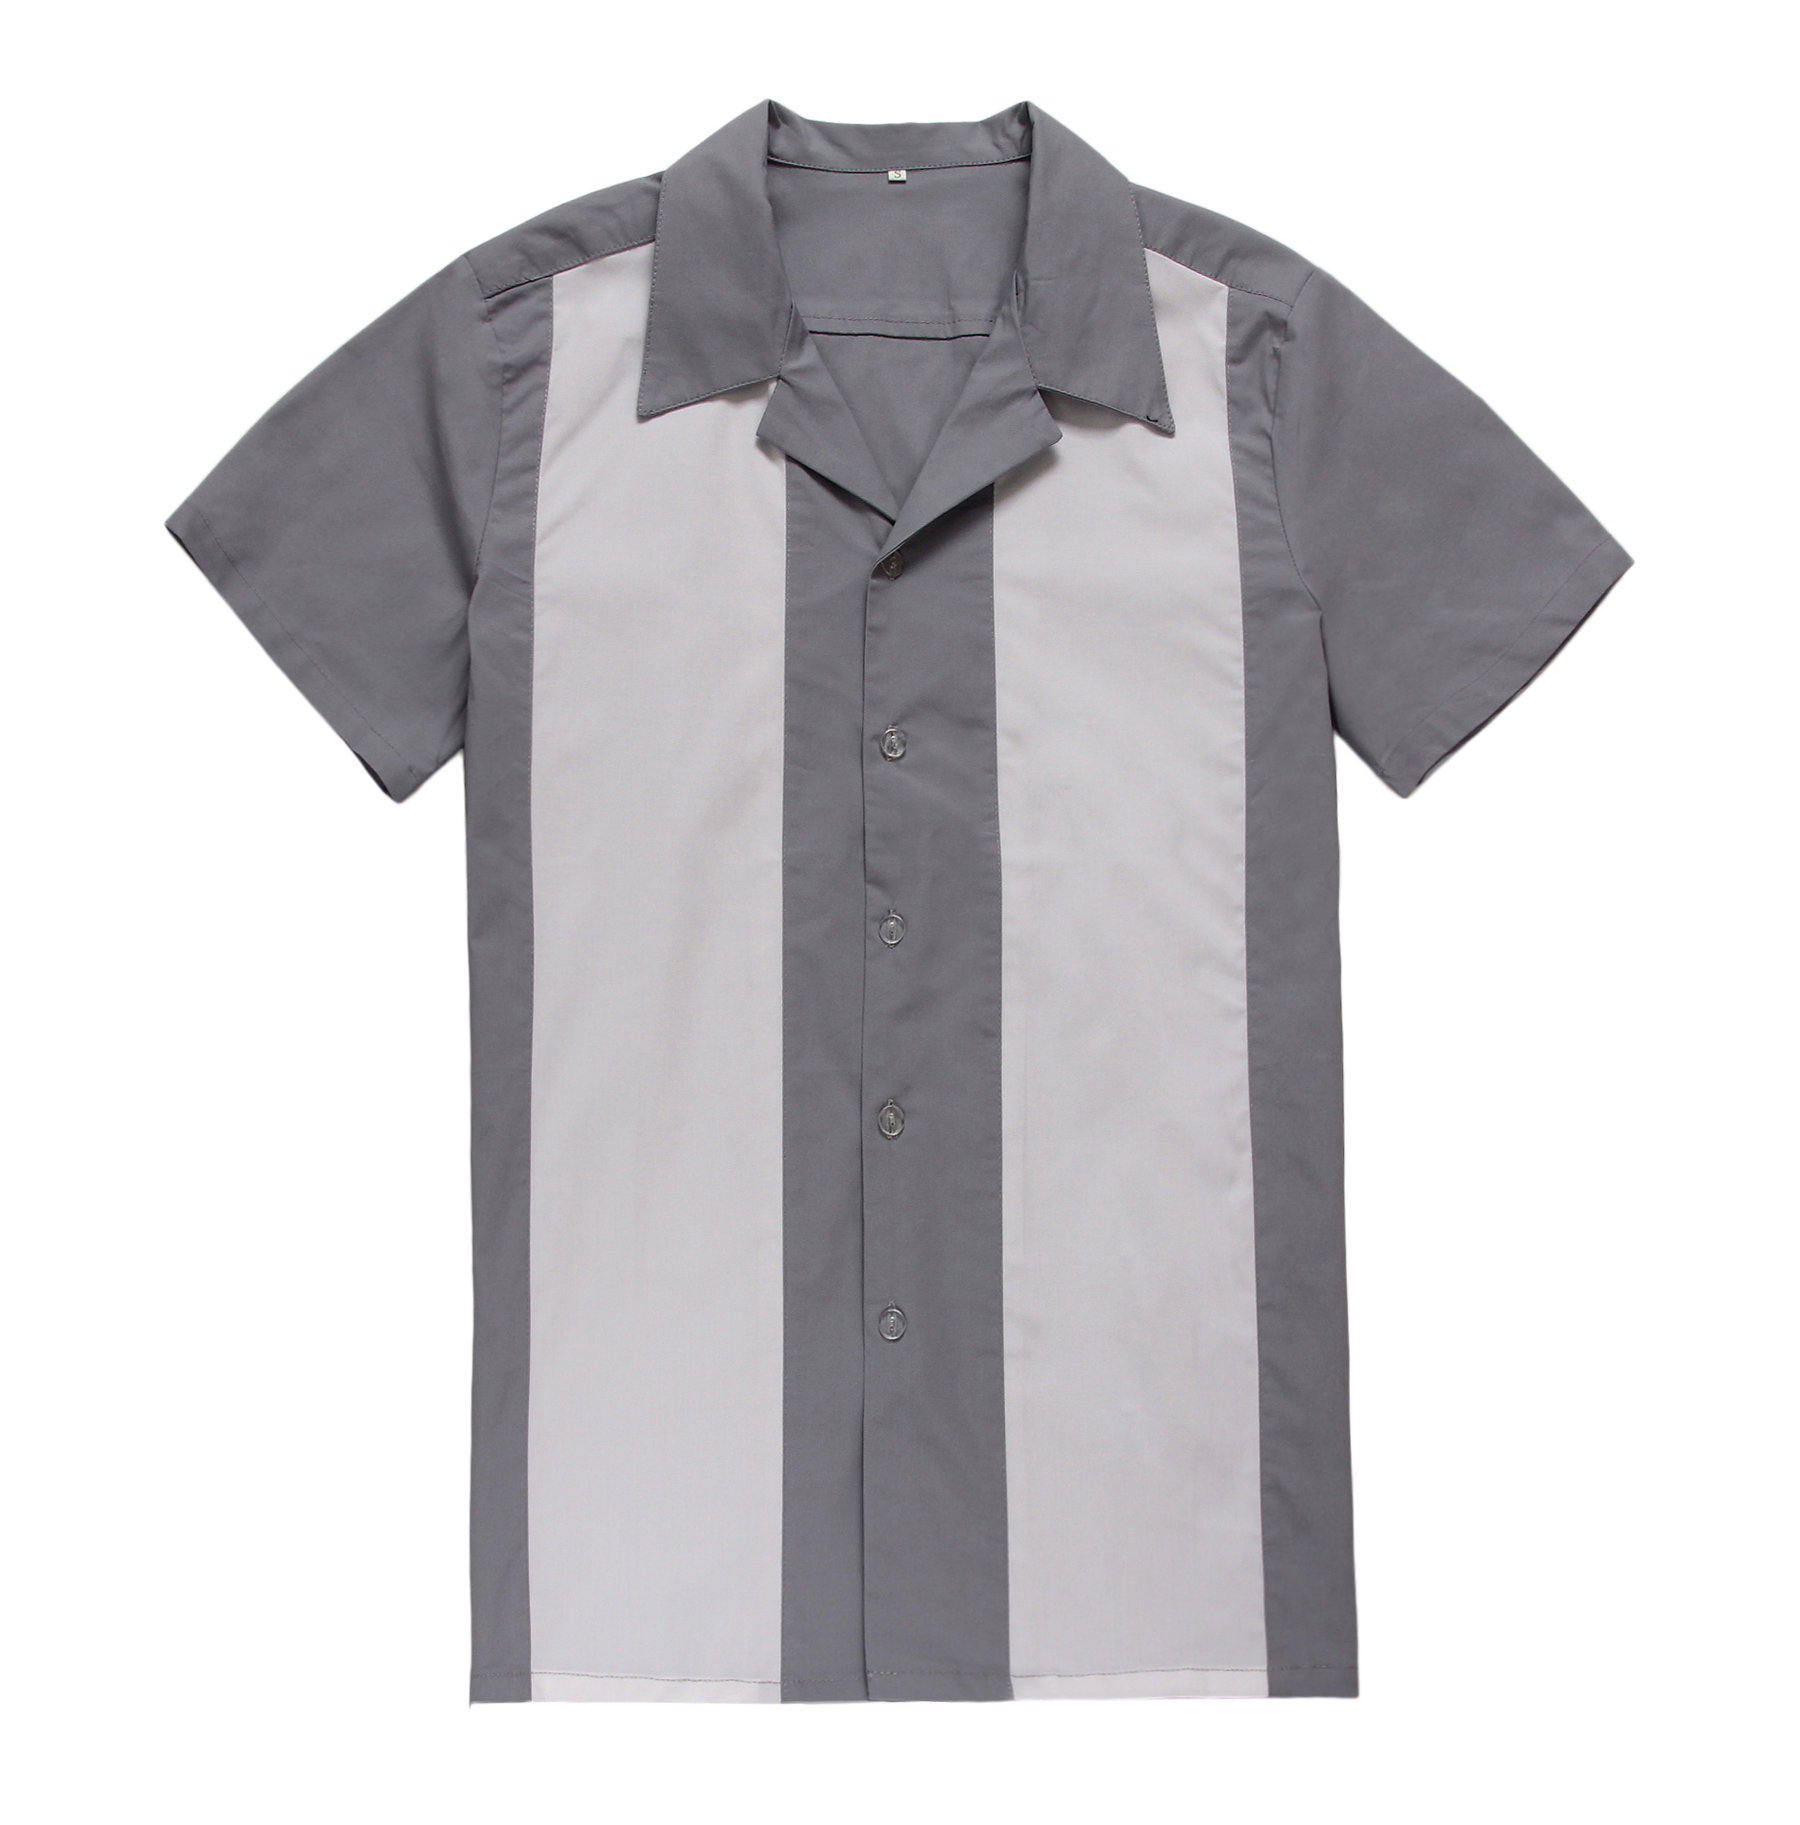 Rockabilly Clothing Short Sleeve On Gray White Cotton Uk Designer Casual Shirts For Men In From S Accessories